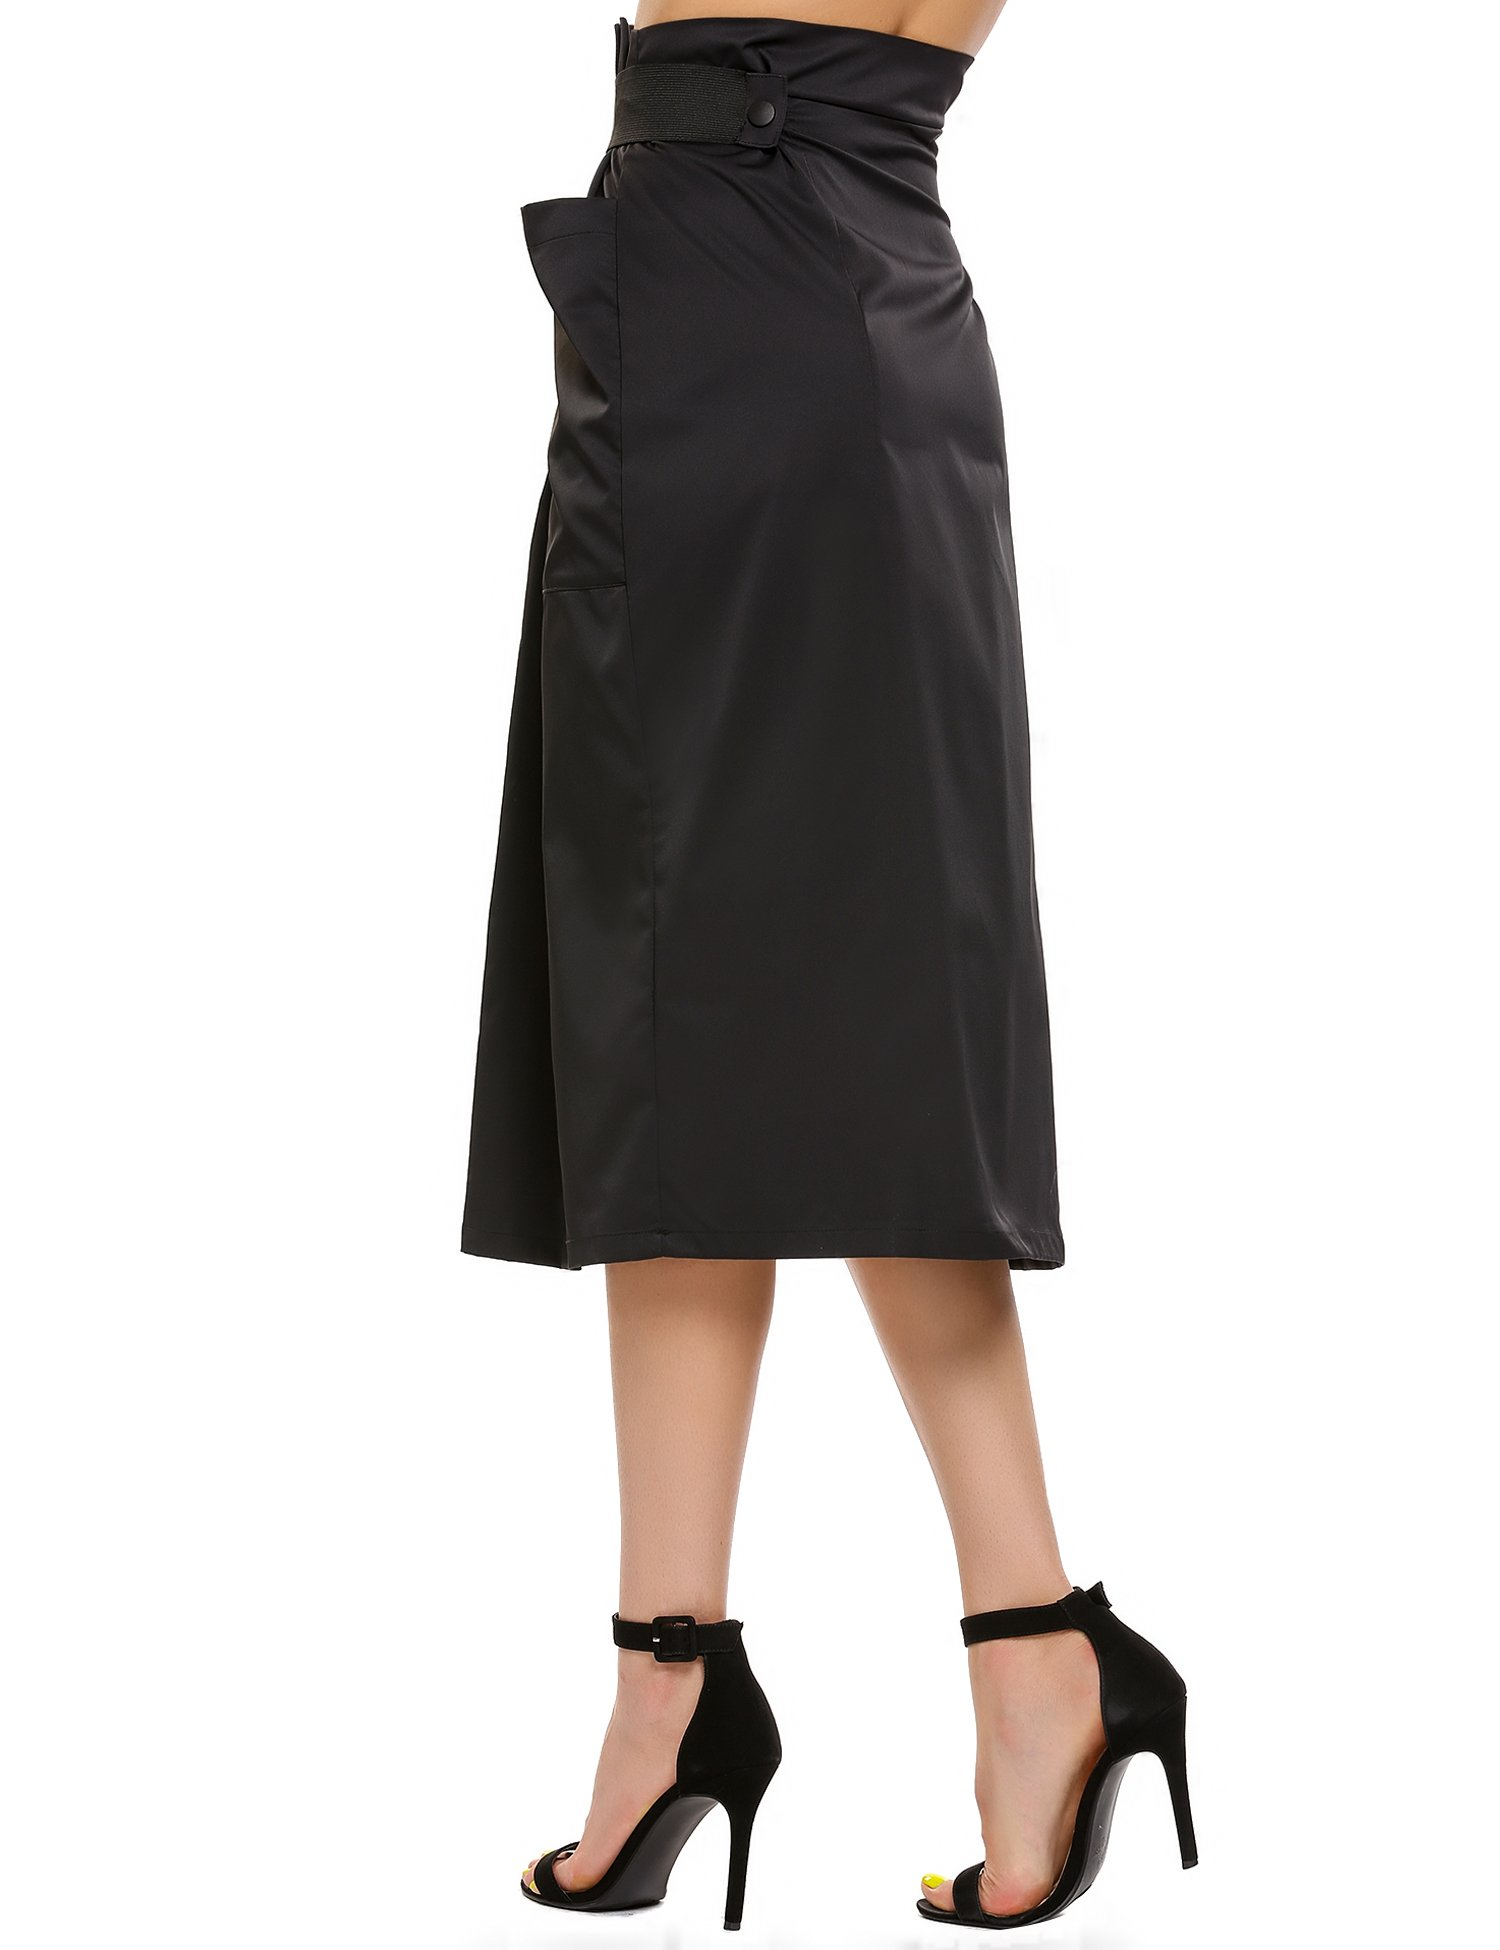 Women Casual High Waisted African A Line Maxi Long Skirt Black Small by Zeagoo (Image #7)